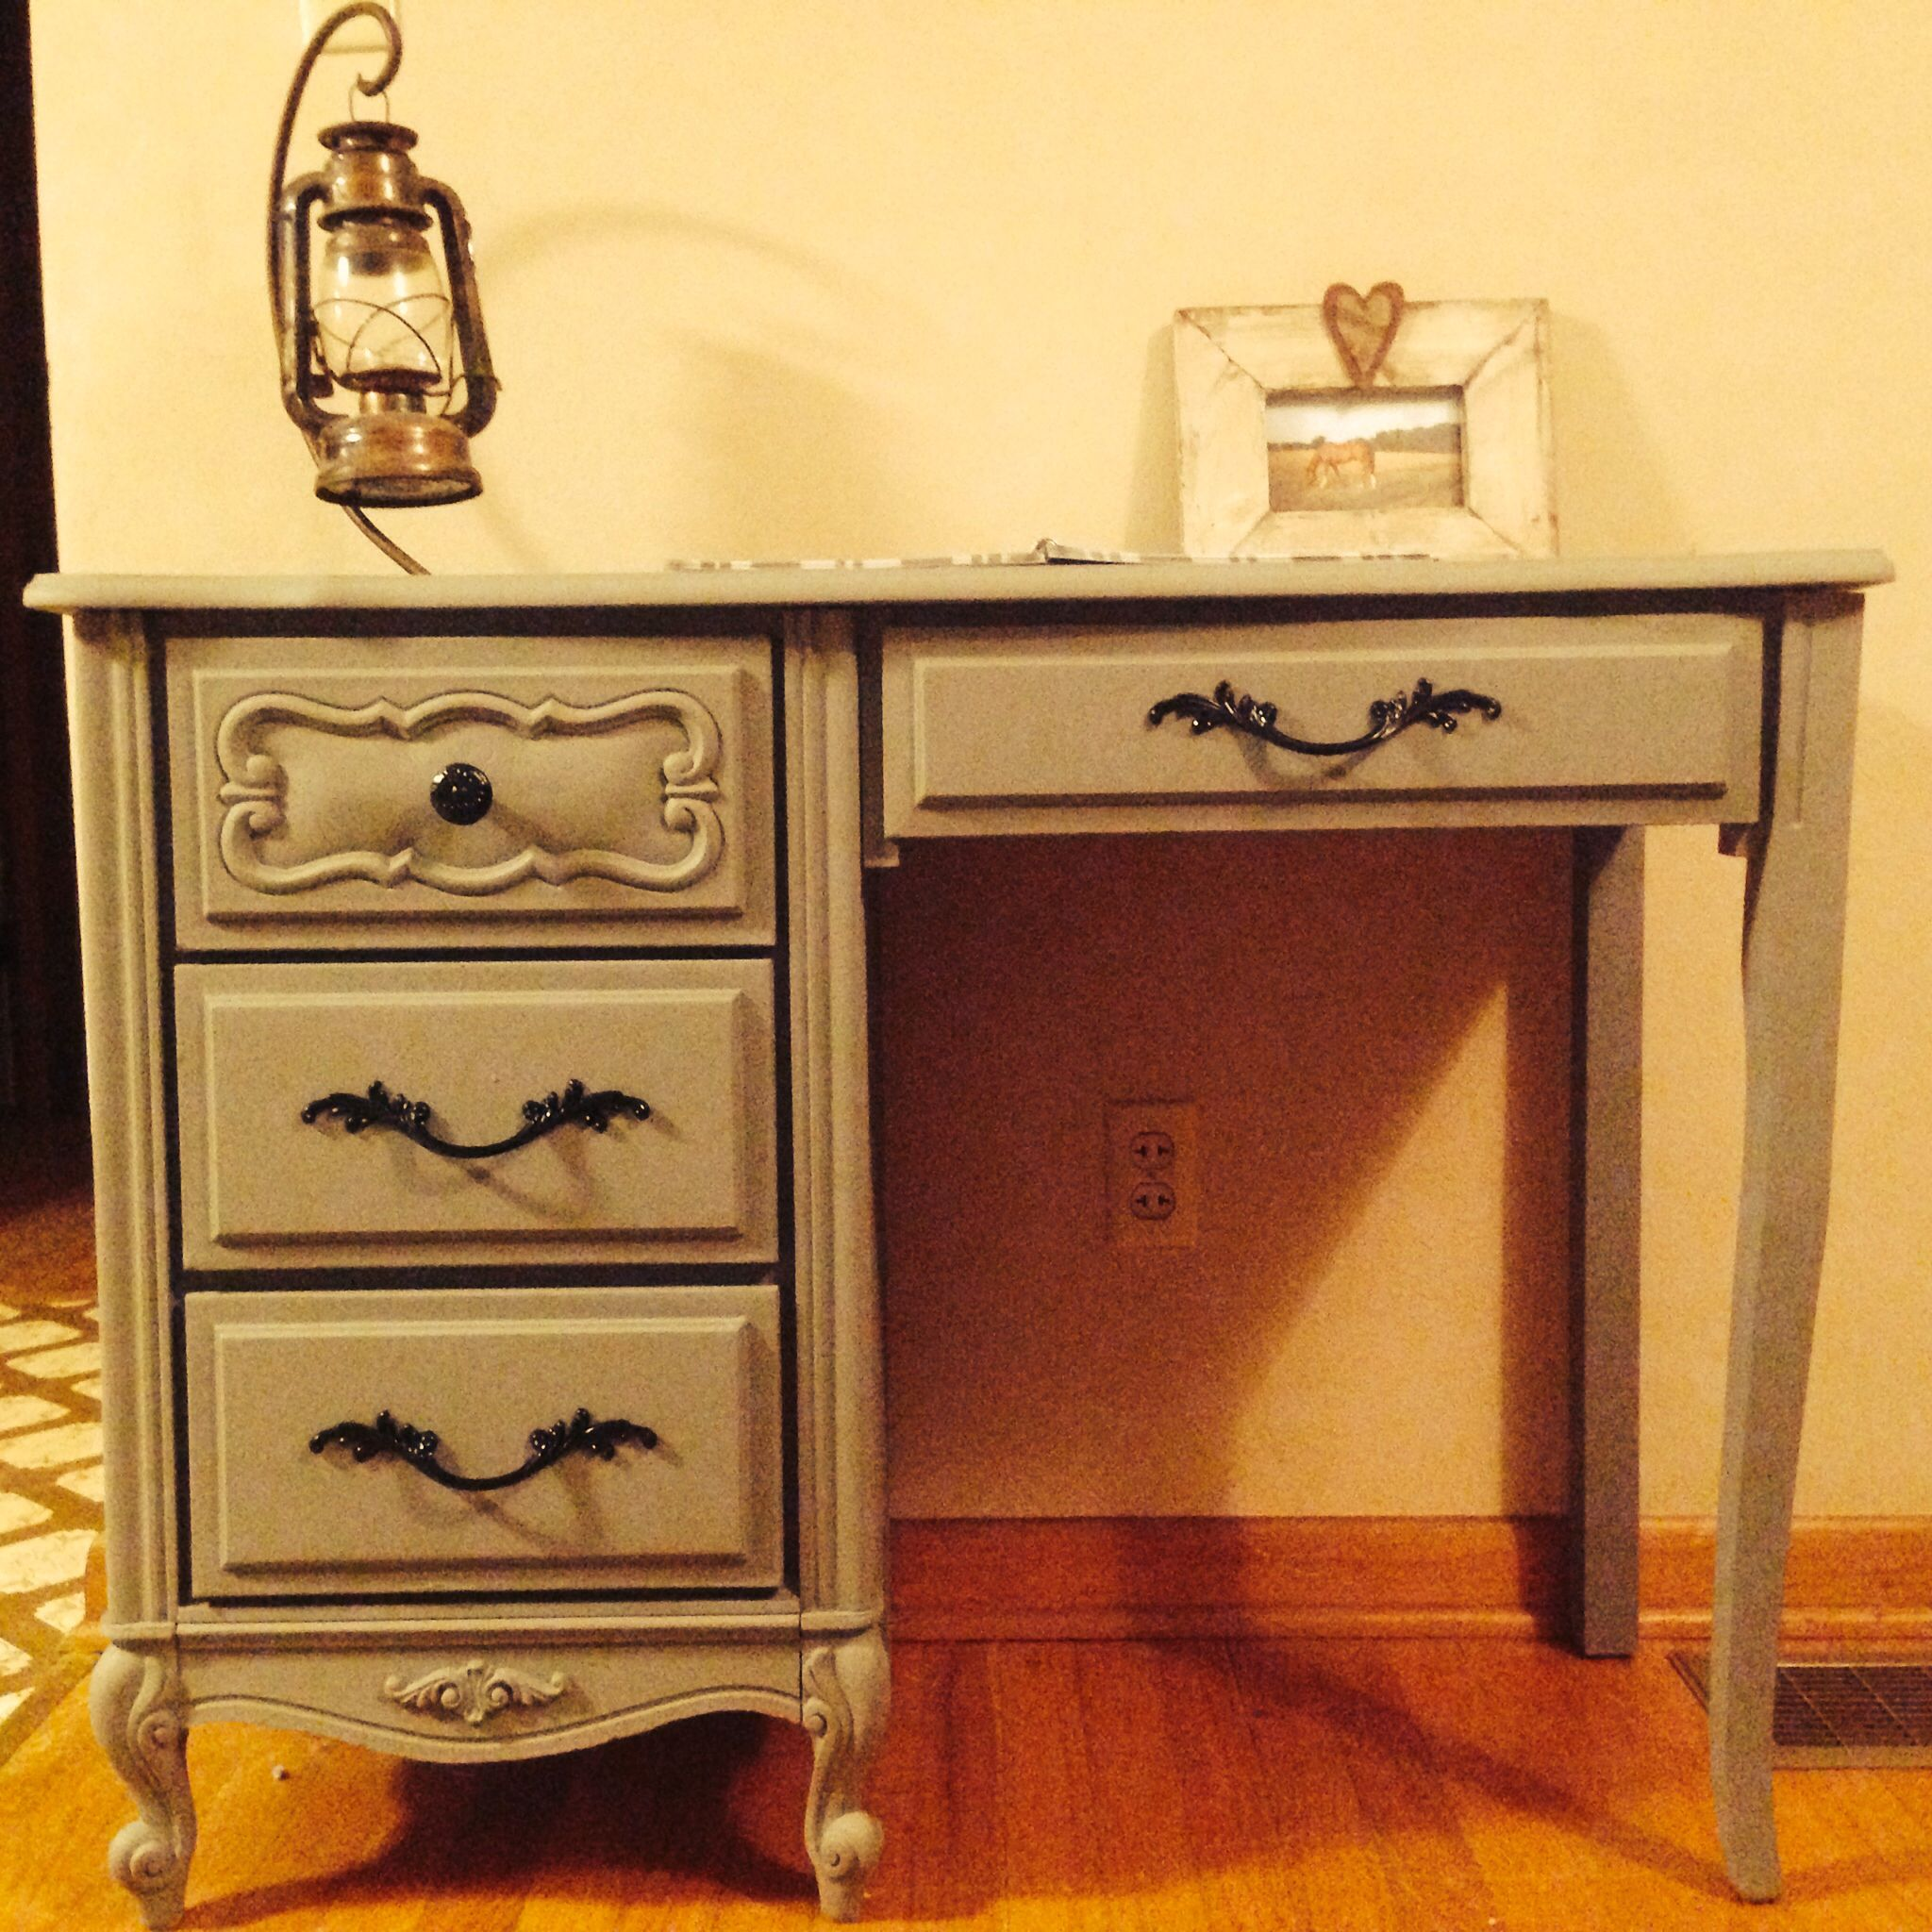 1960 French Provincial Desk painted dark gray with black